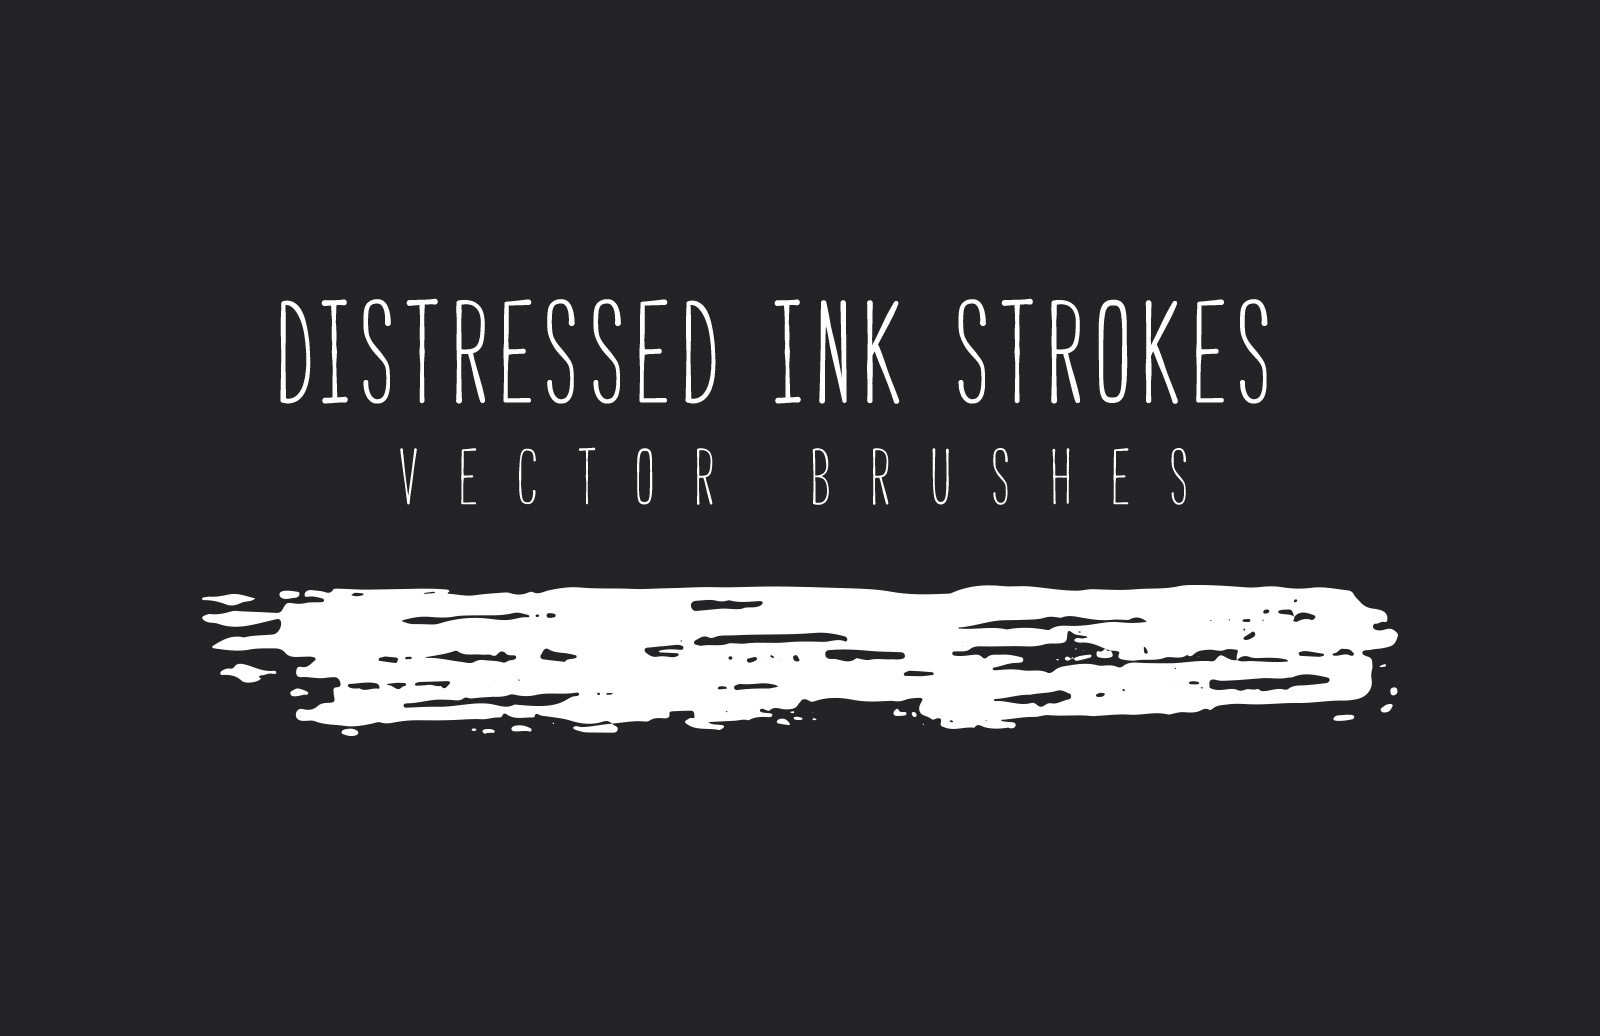 Distressed Ink Strokes - Vector Brushes